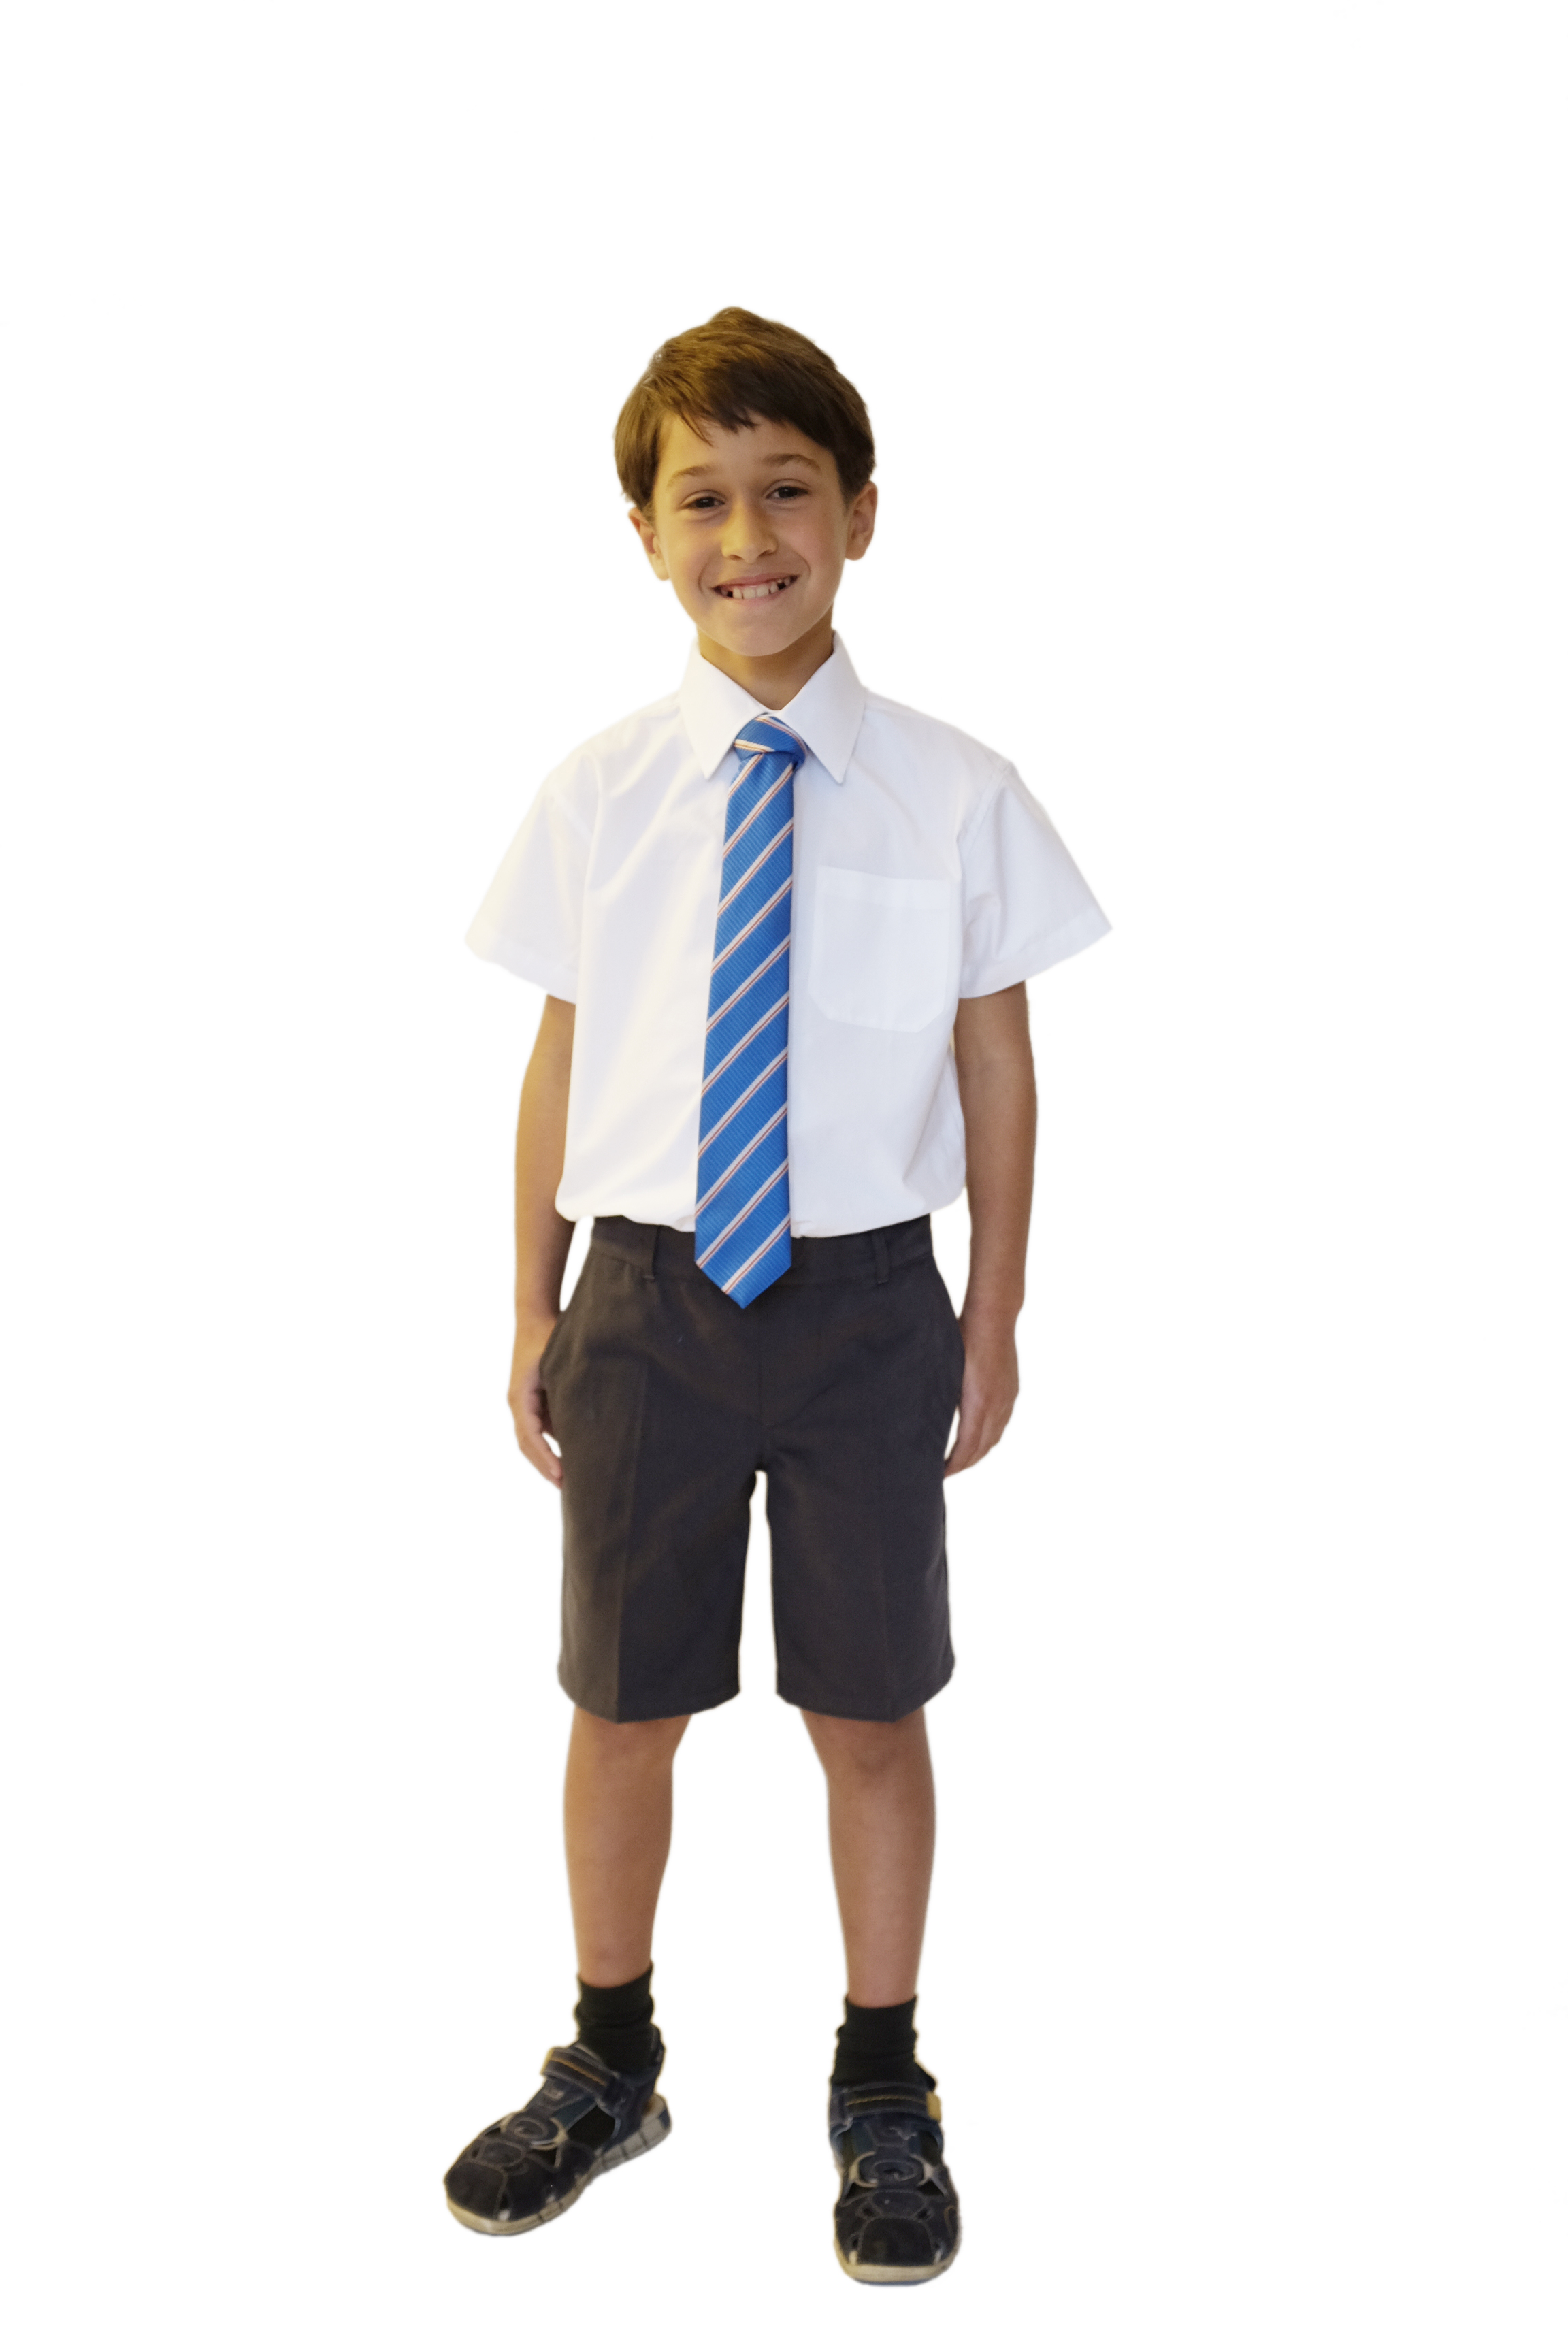 students should wear school uniforms persuasive essay